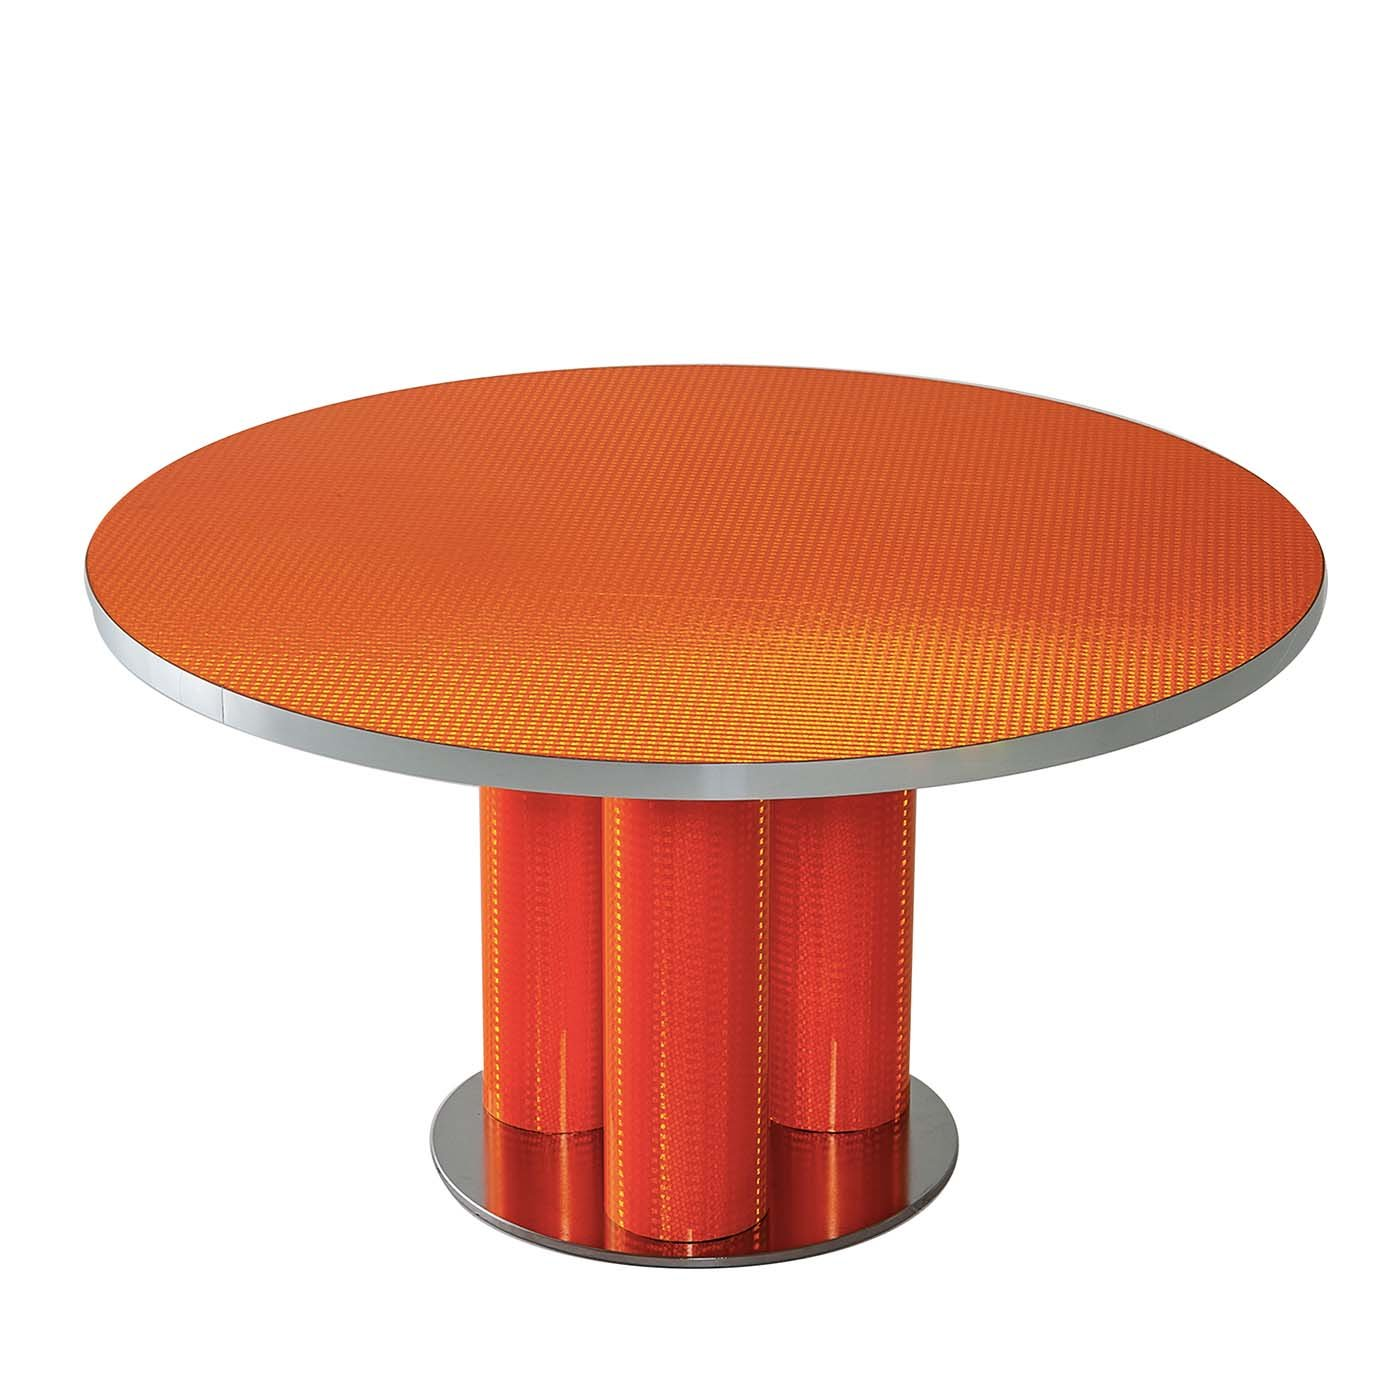 Reflective Collection Red Round Coffee Table Round Coffee Table Coffee Table Low Dining Table [ 1400 x 1400 Pixel ]